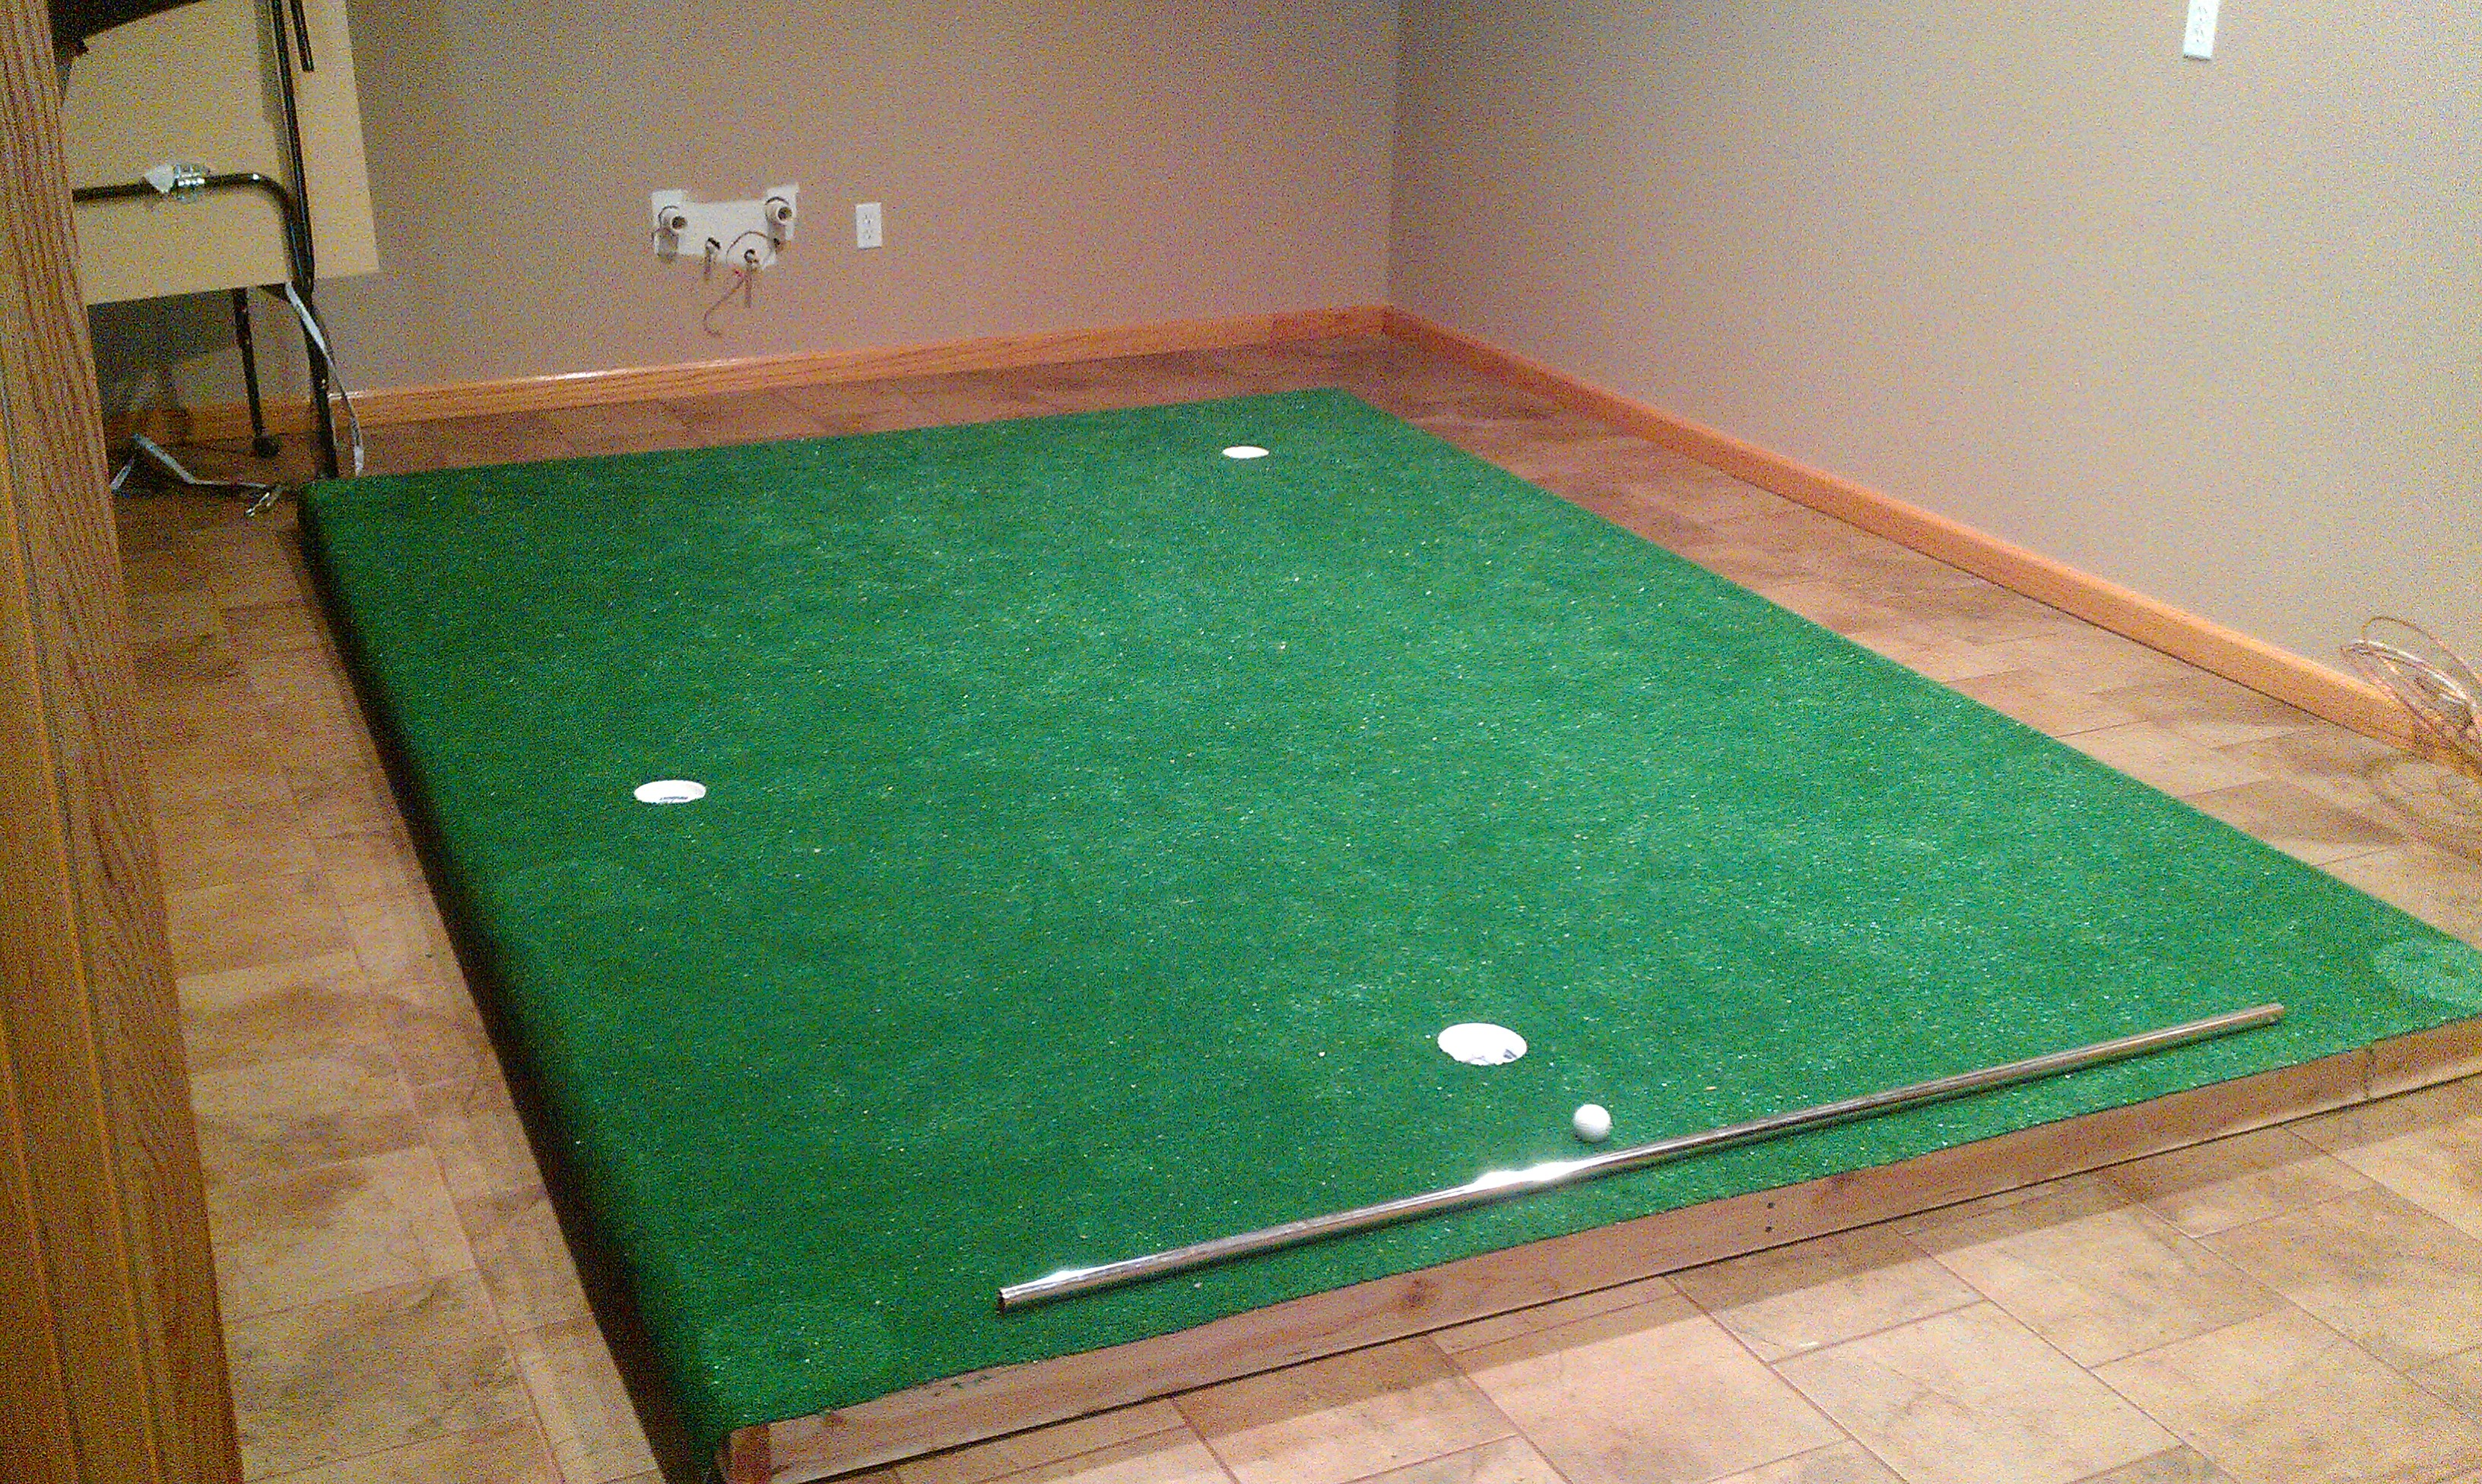 Built an indoor putting green - Golf Talk - The Sand Trap .com